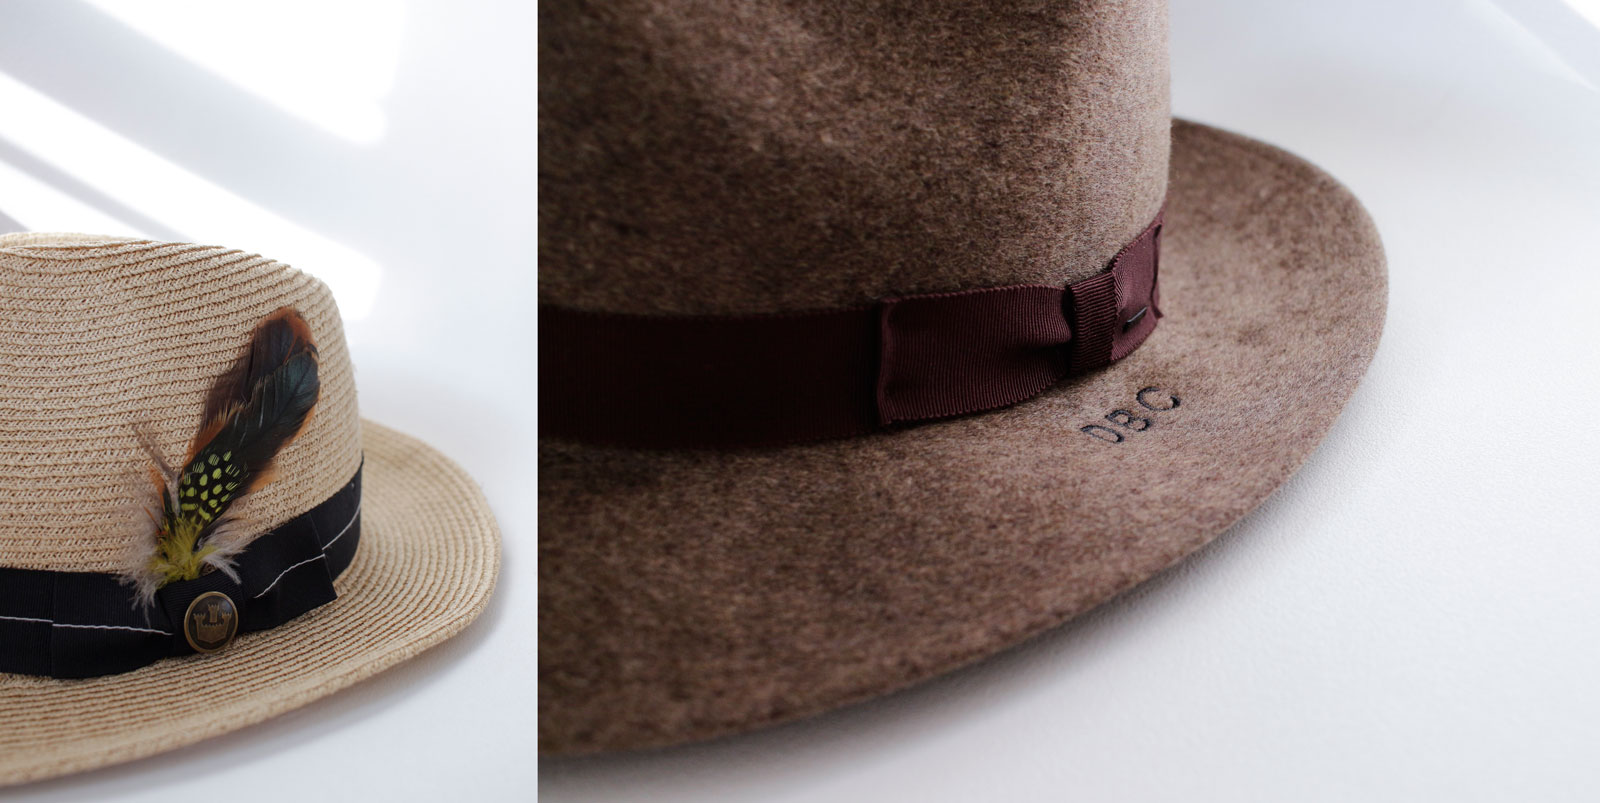 hat detail closeups - Everything You Need To Know About Fedoras